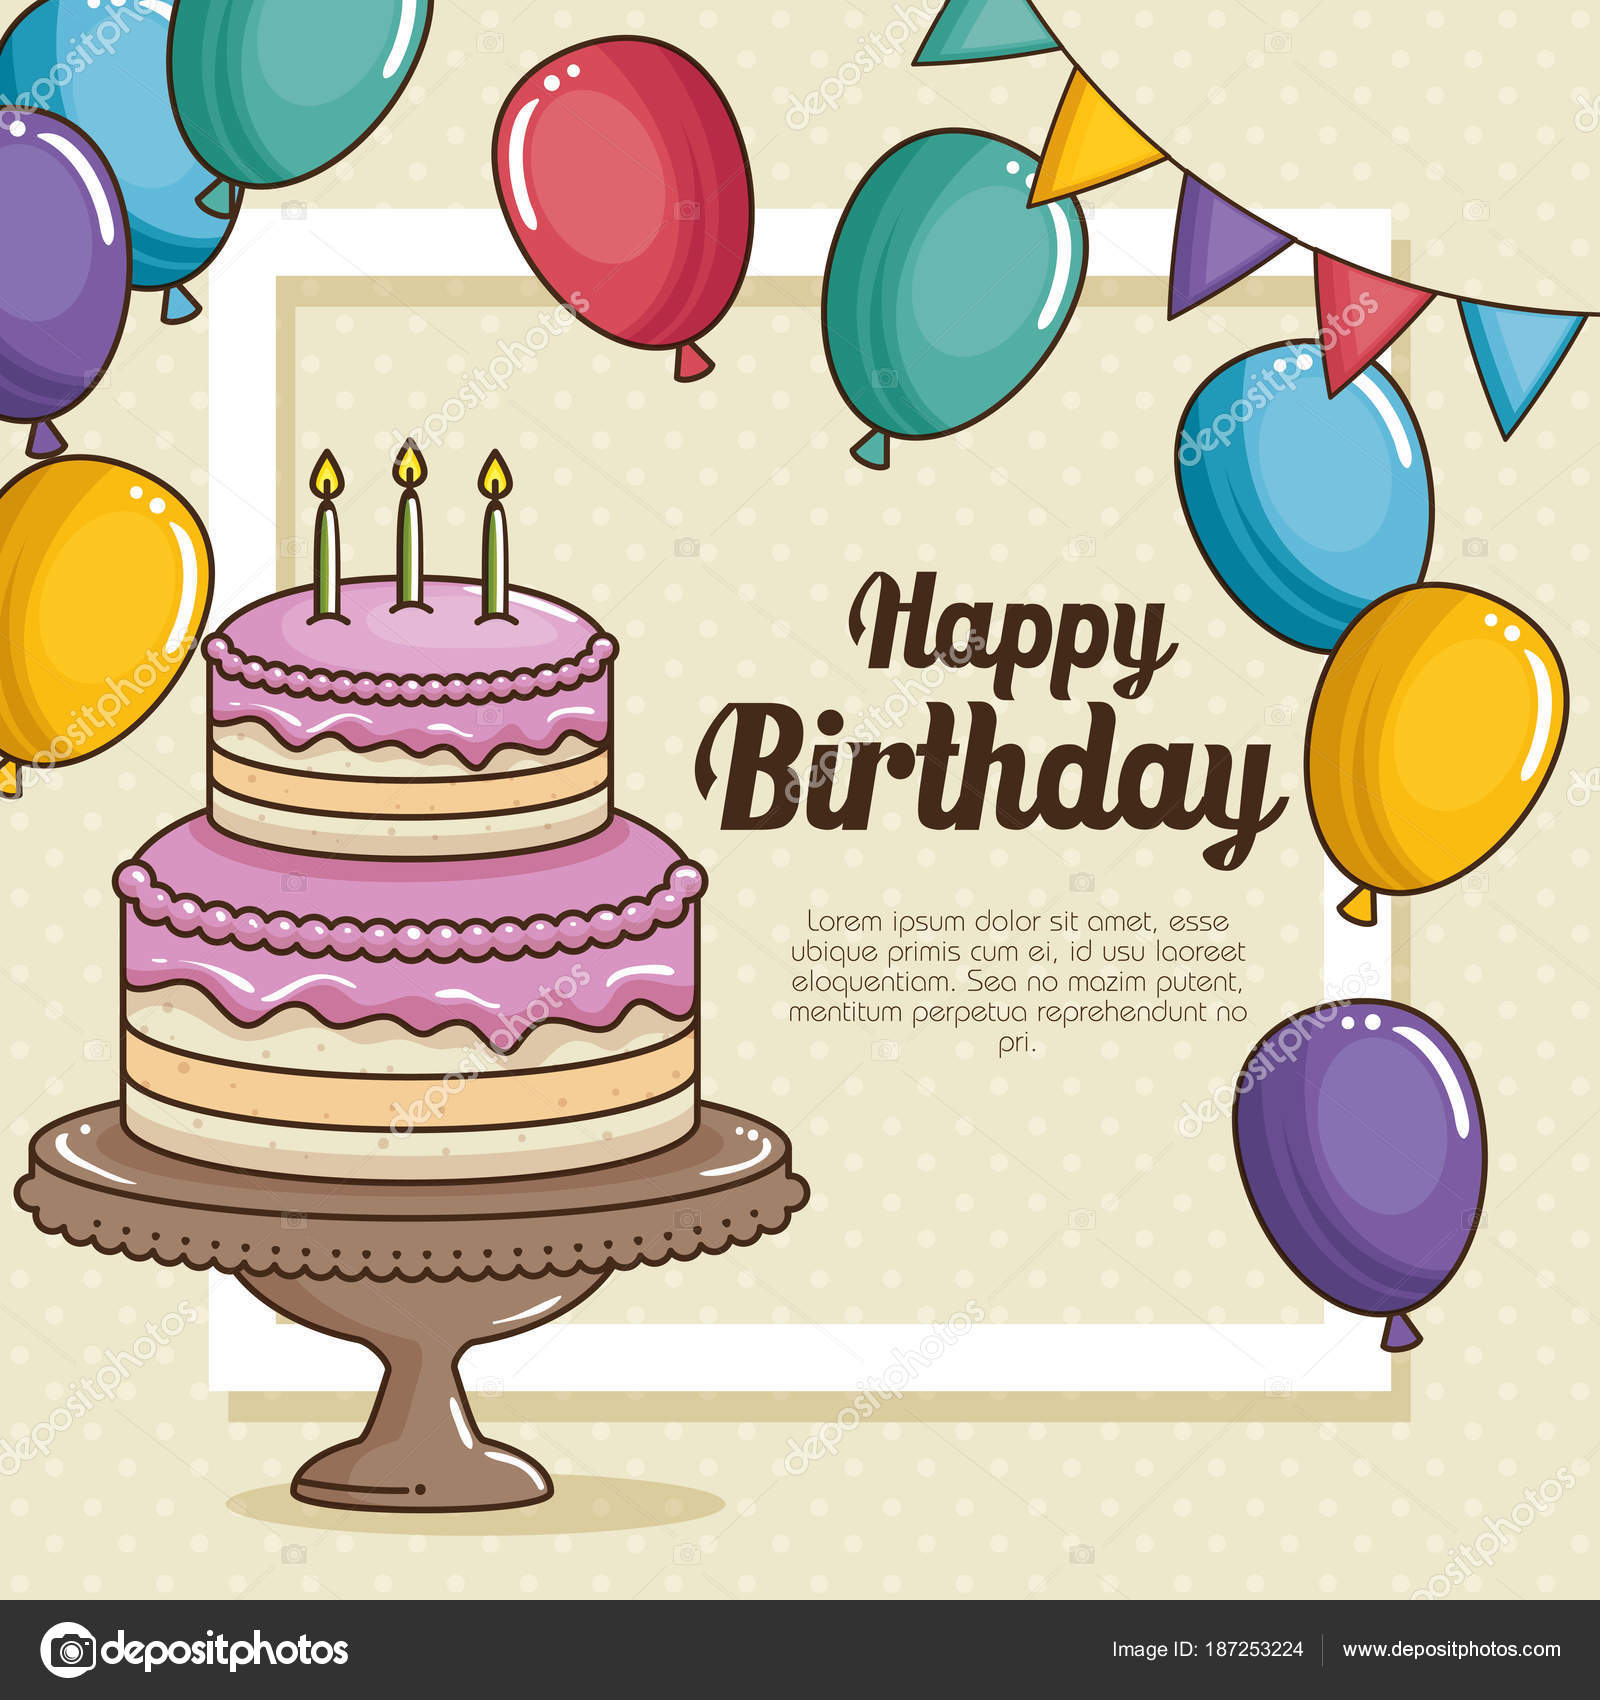 Cake And Balloons Of Happy Birthday Celebration Theme Vector Illustration By Yupiramos